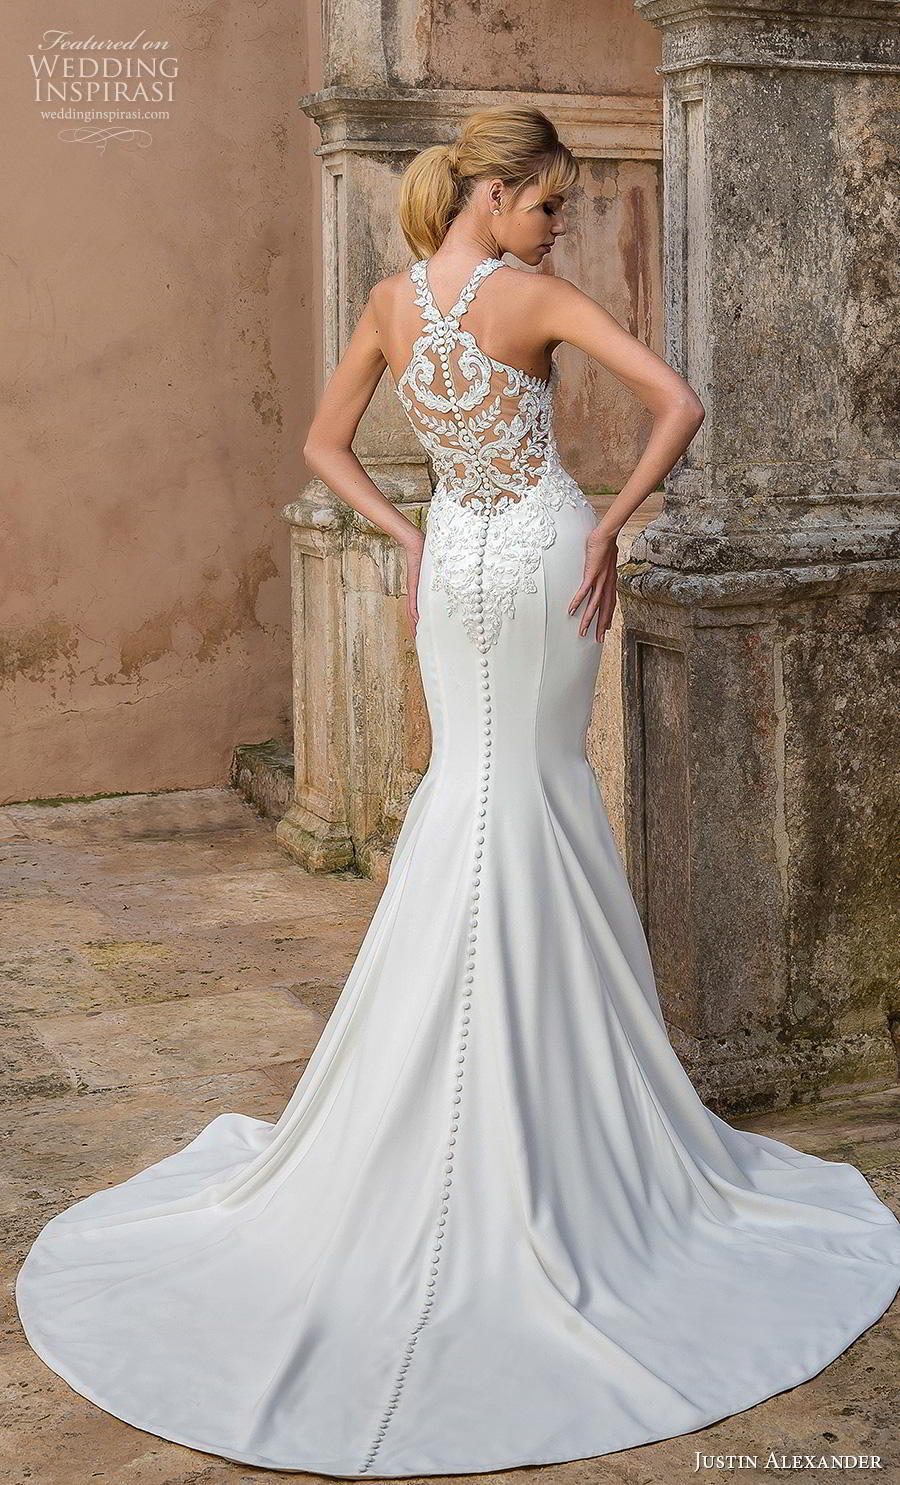 justin alexander spring 2019 bridal halter neck heavily embellished bodice elegant fit and flare trumpet wedding dress rasor back medium train (10) bv